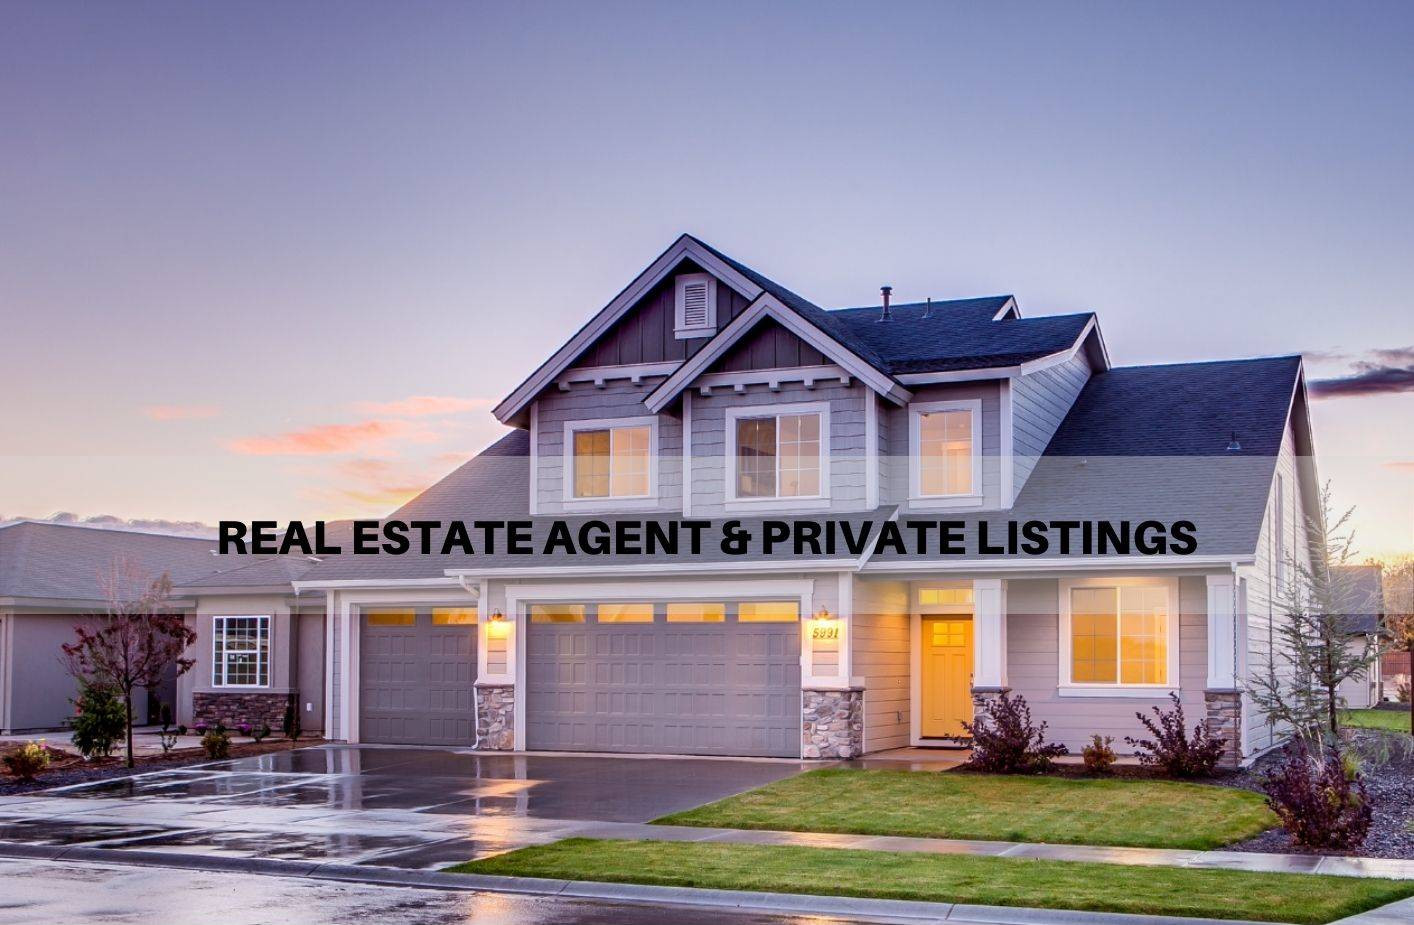 Real Estate Agent & Private Listings.jpg